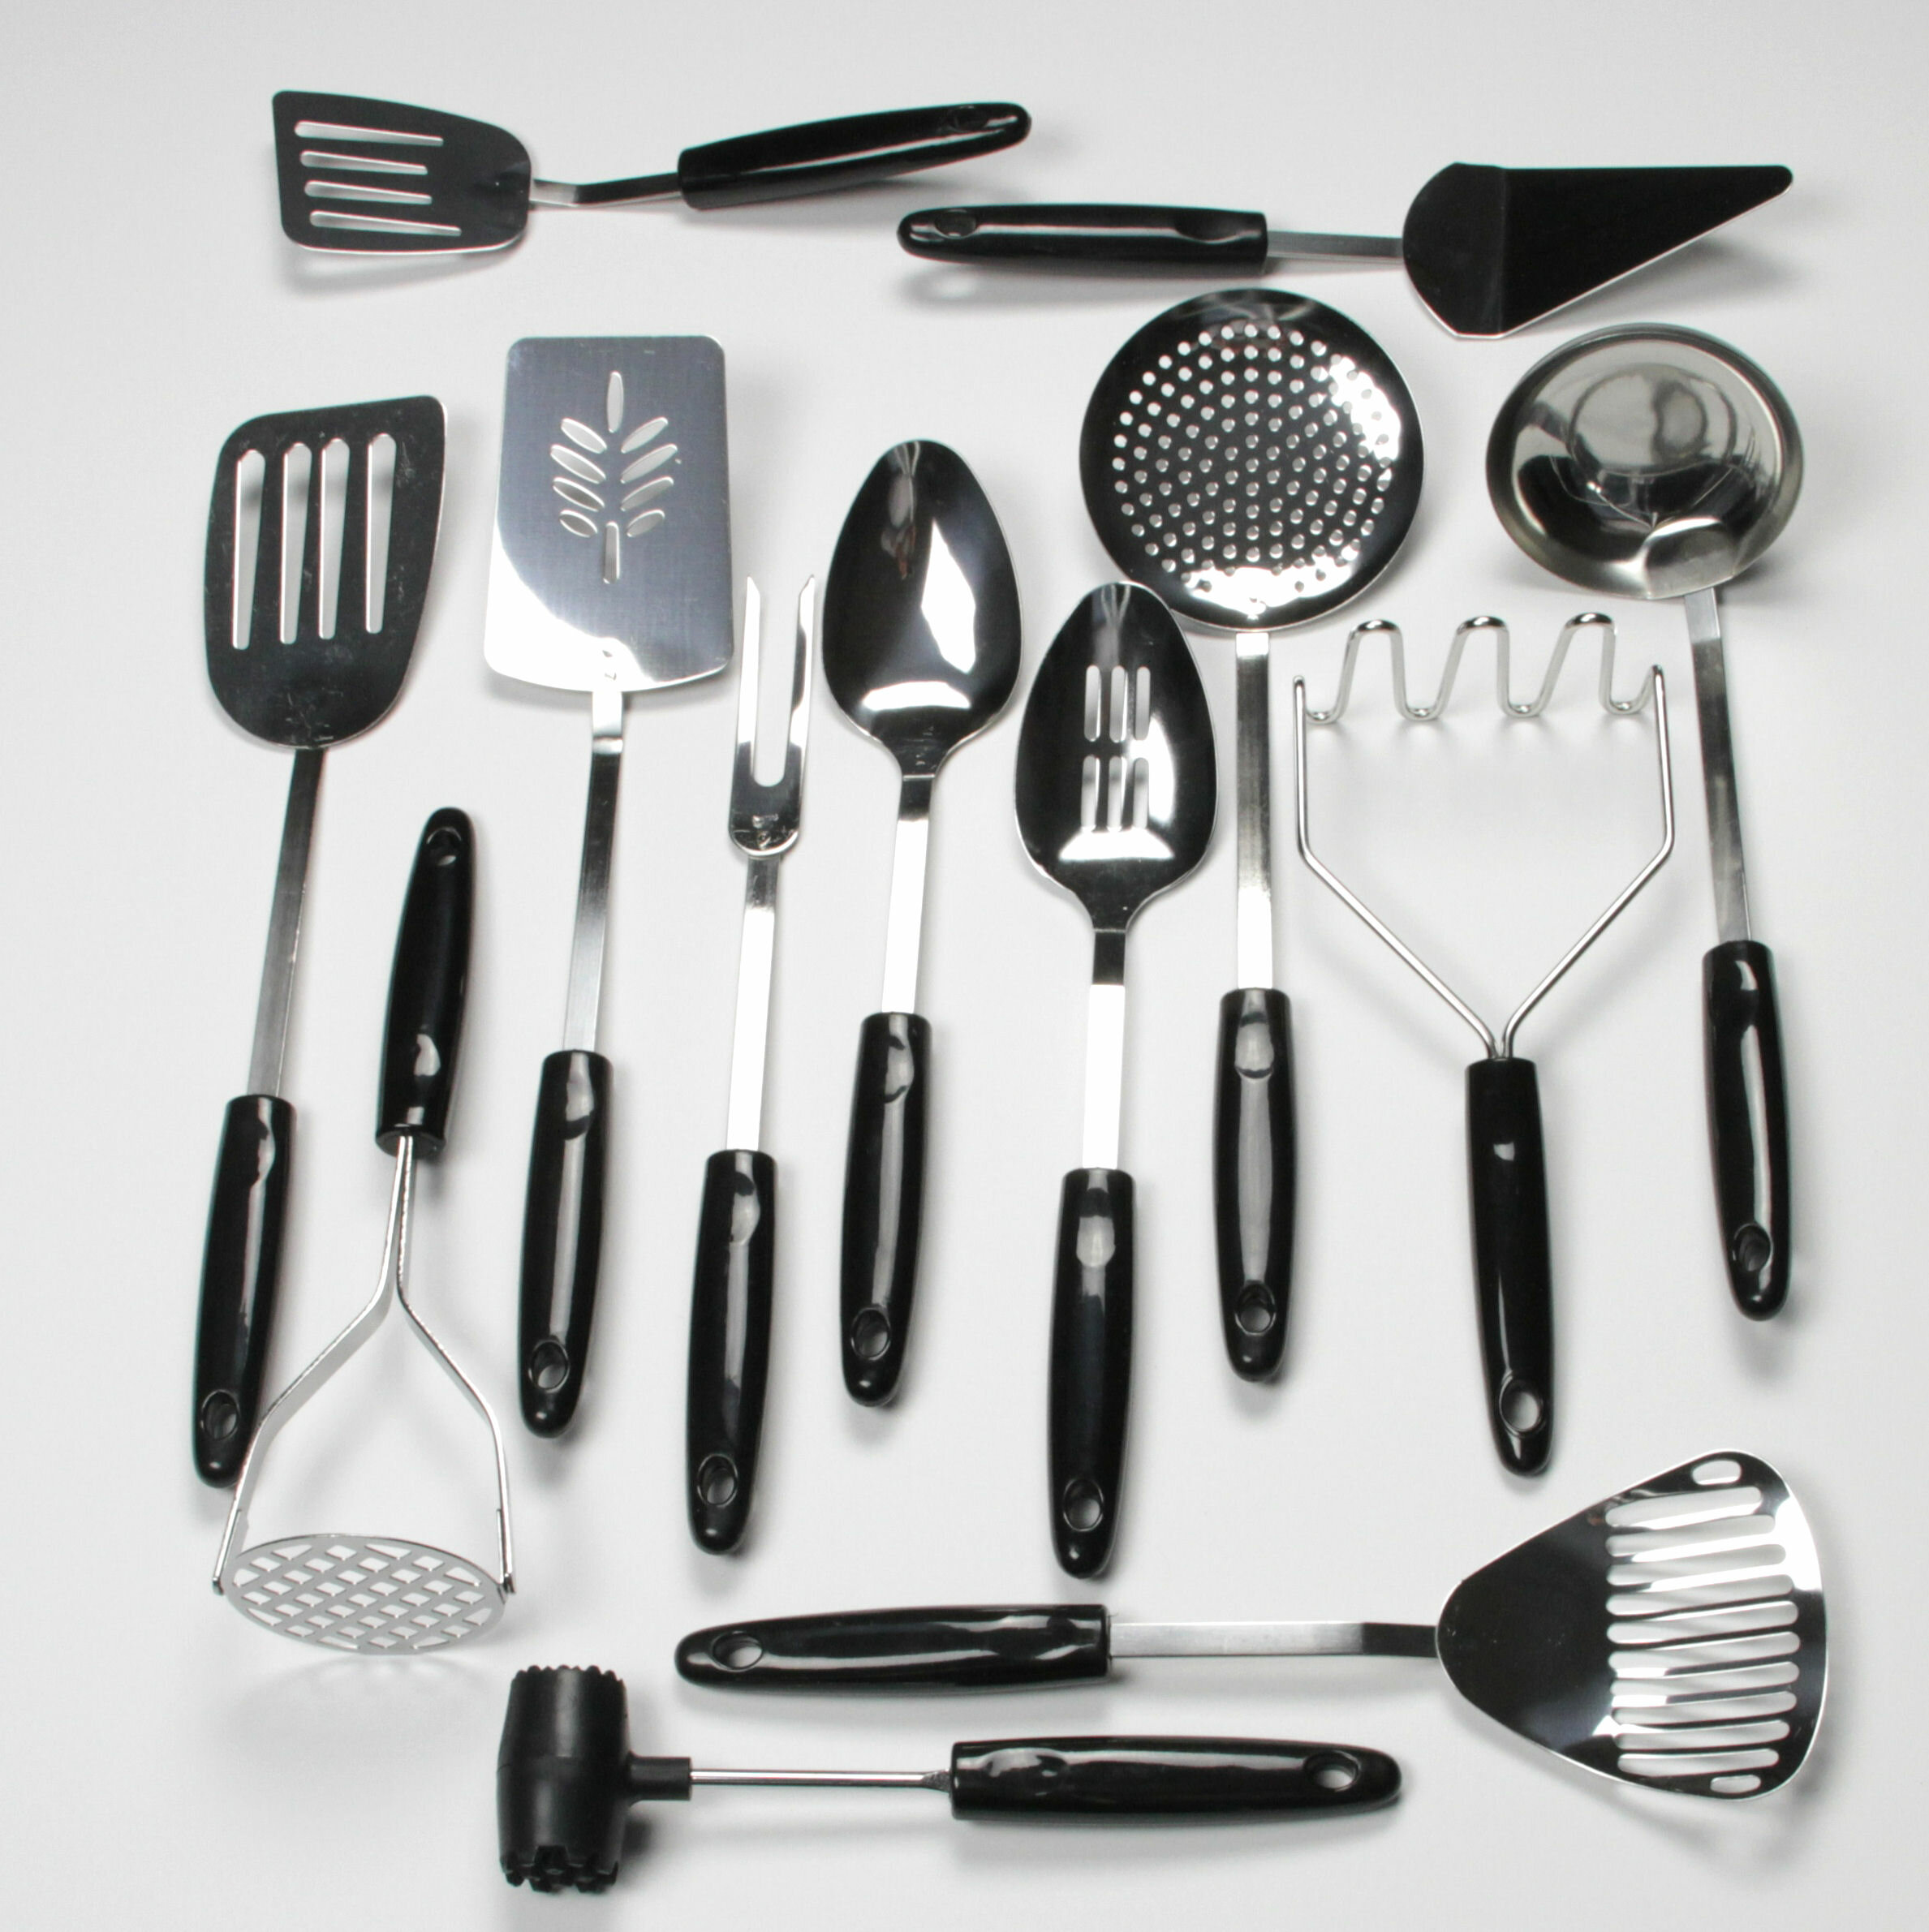 Chef craft 13 piece select stainless steel kitchen utensil set reviews wayfair